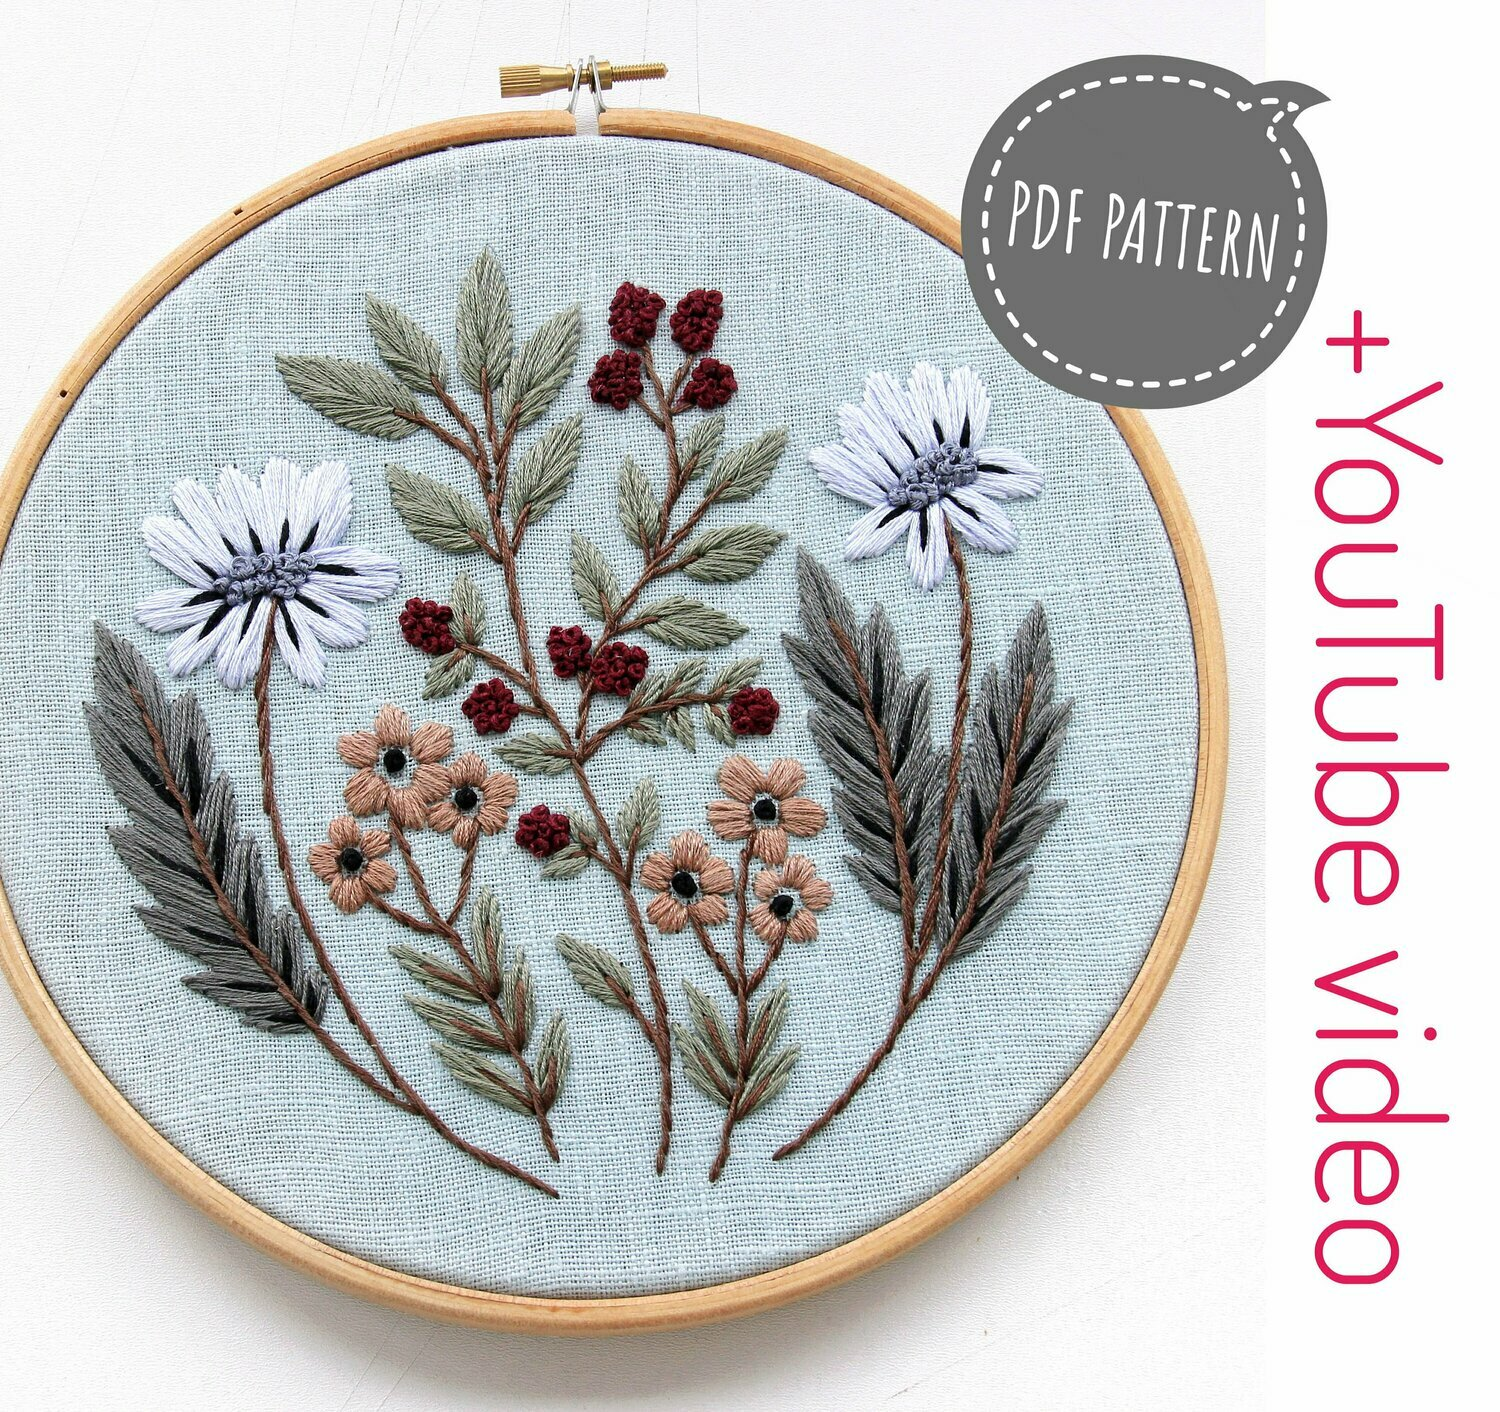 Embroidery for beginners pdf pattern+ video. Blue wild flowers